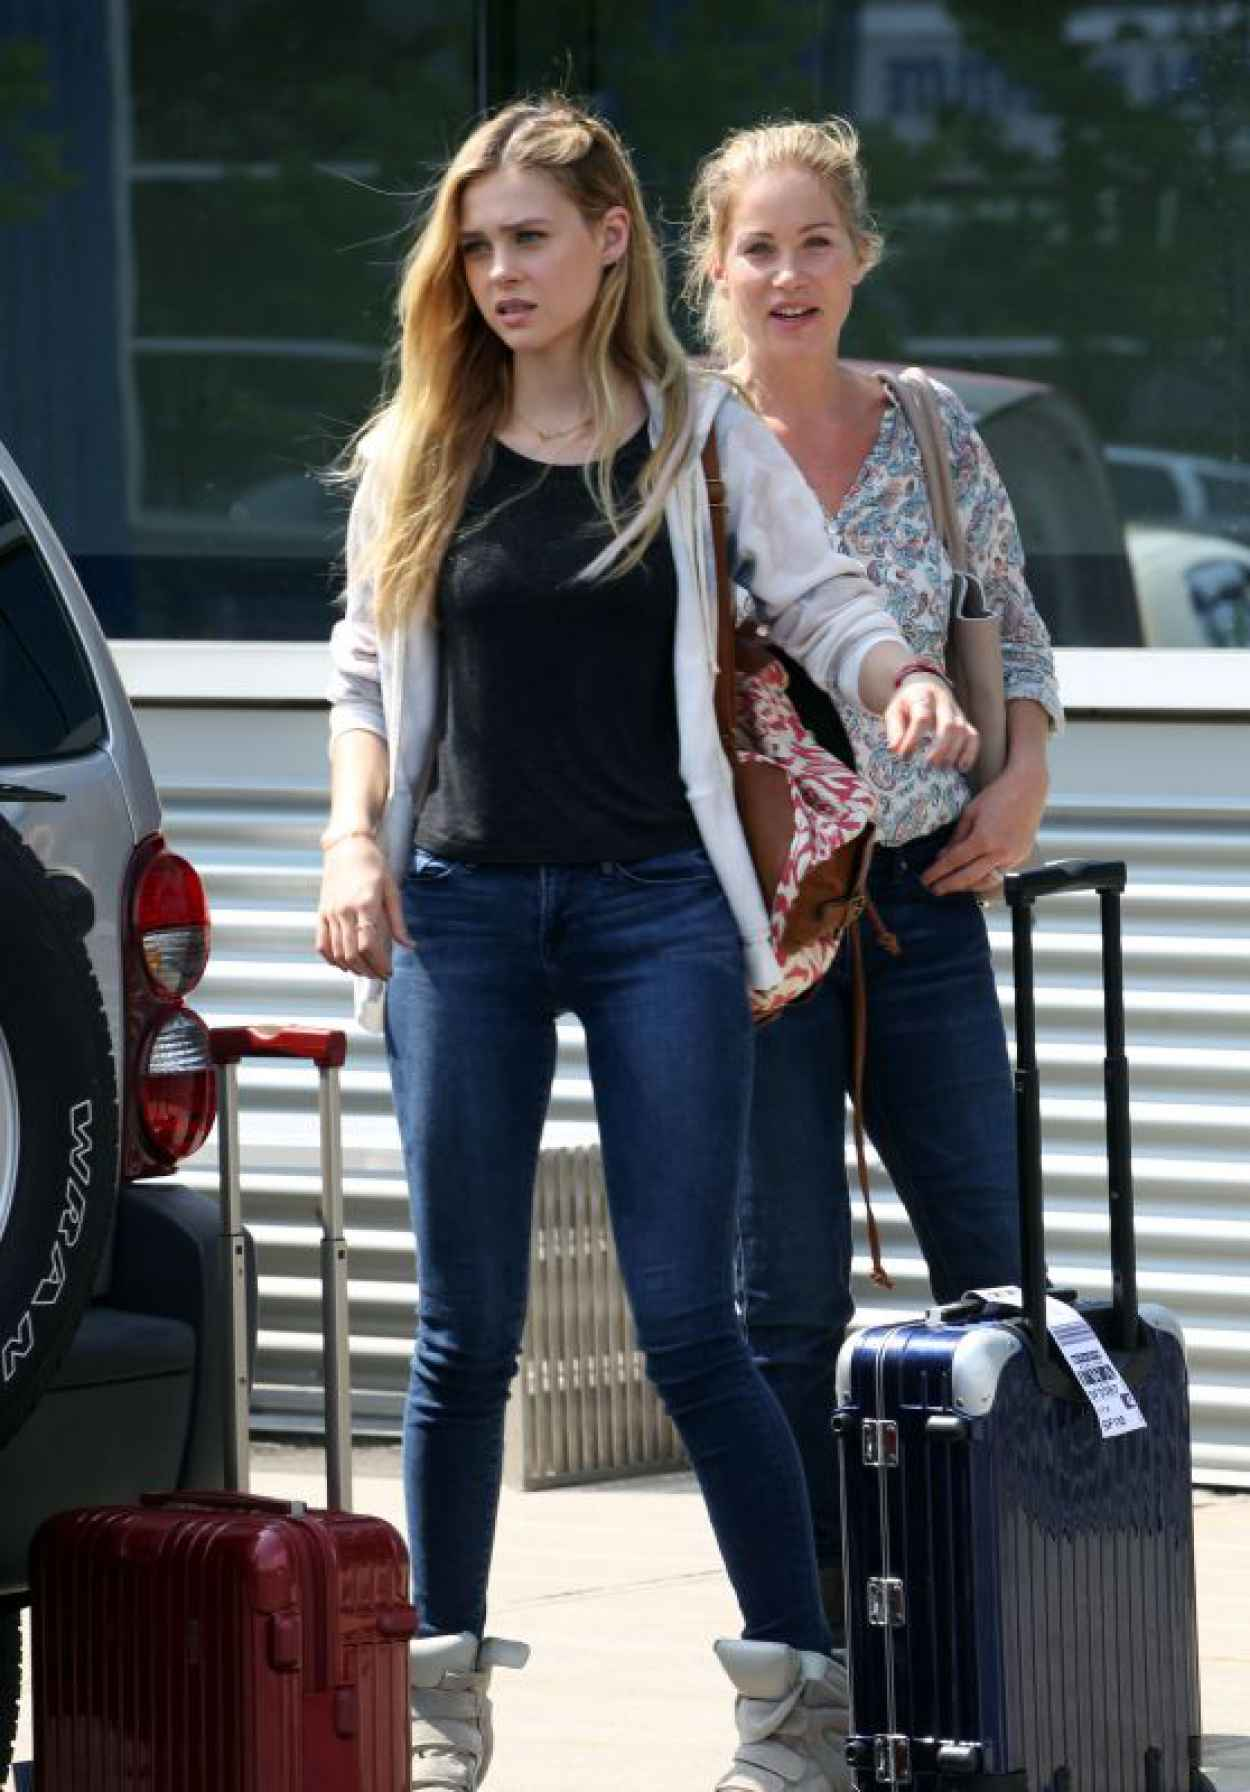 Nicola Peltz and Christina Applegate on the set of Youth in New York City-1